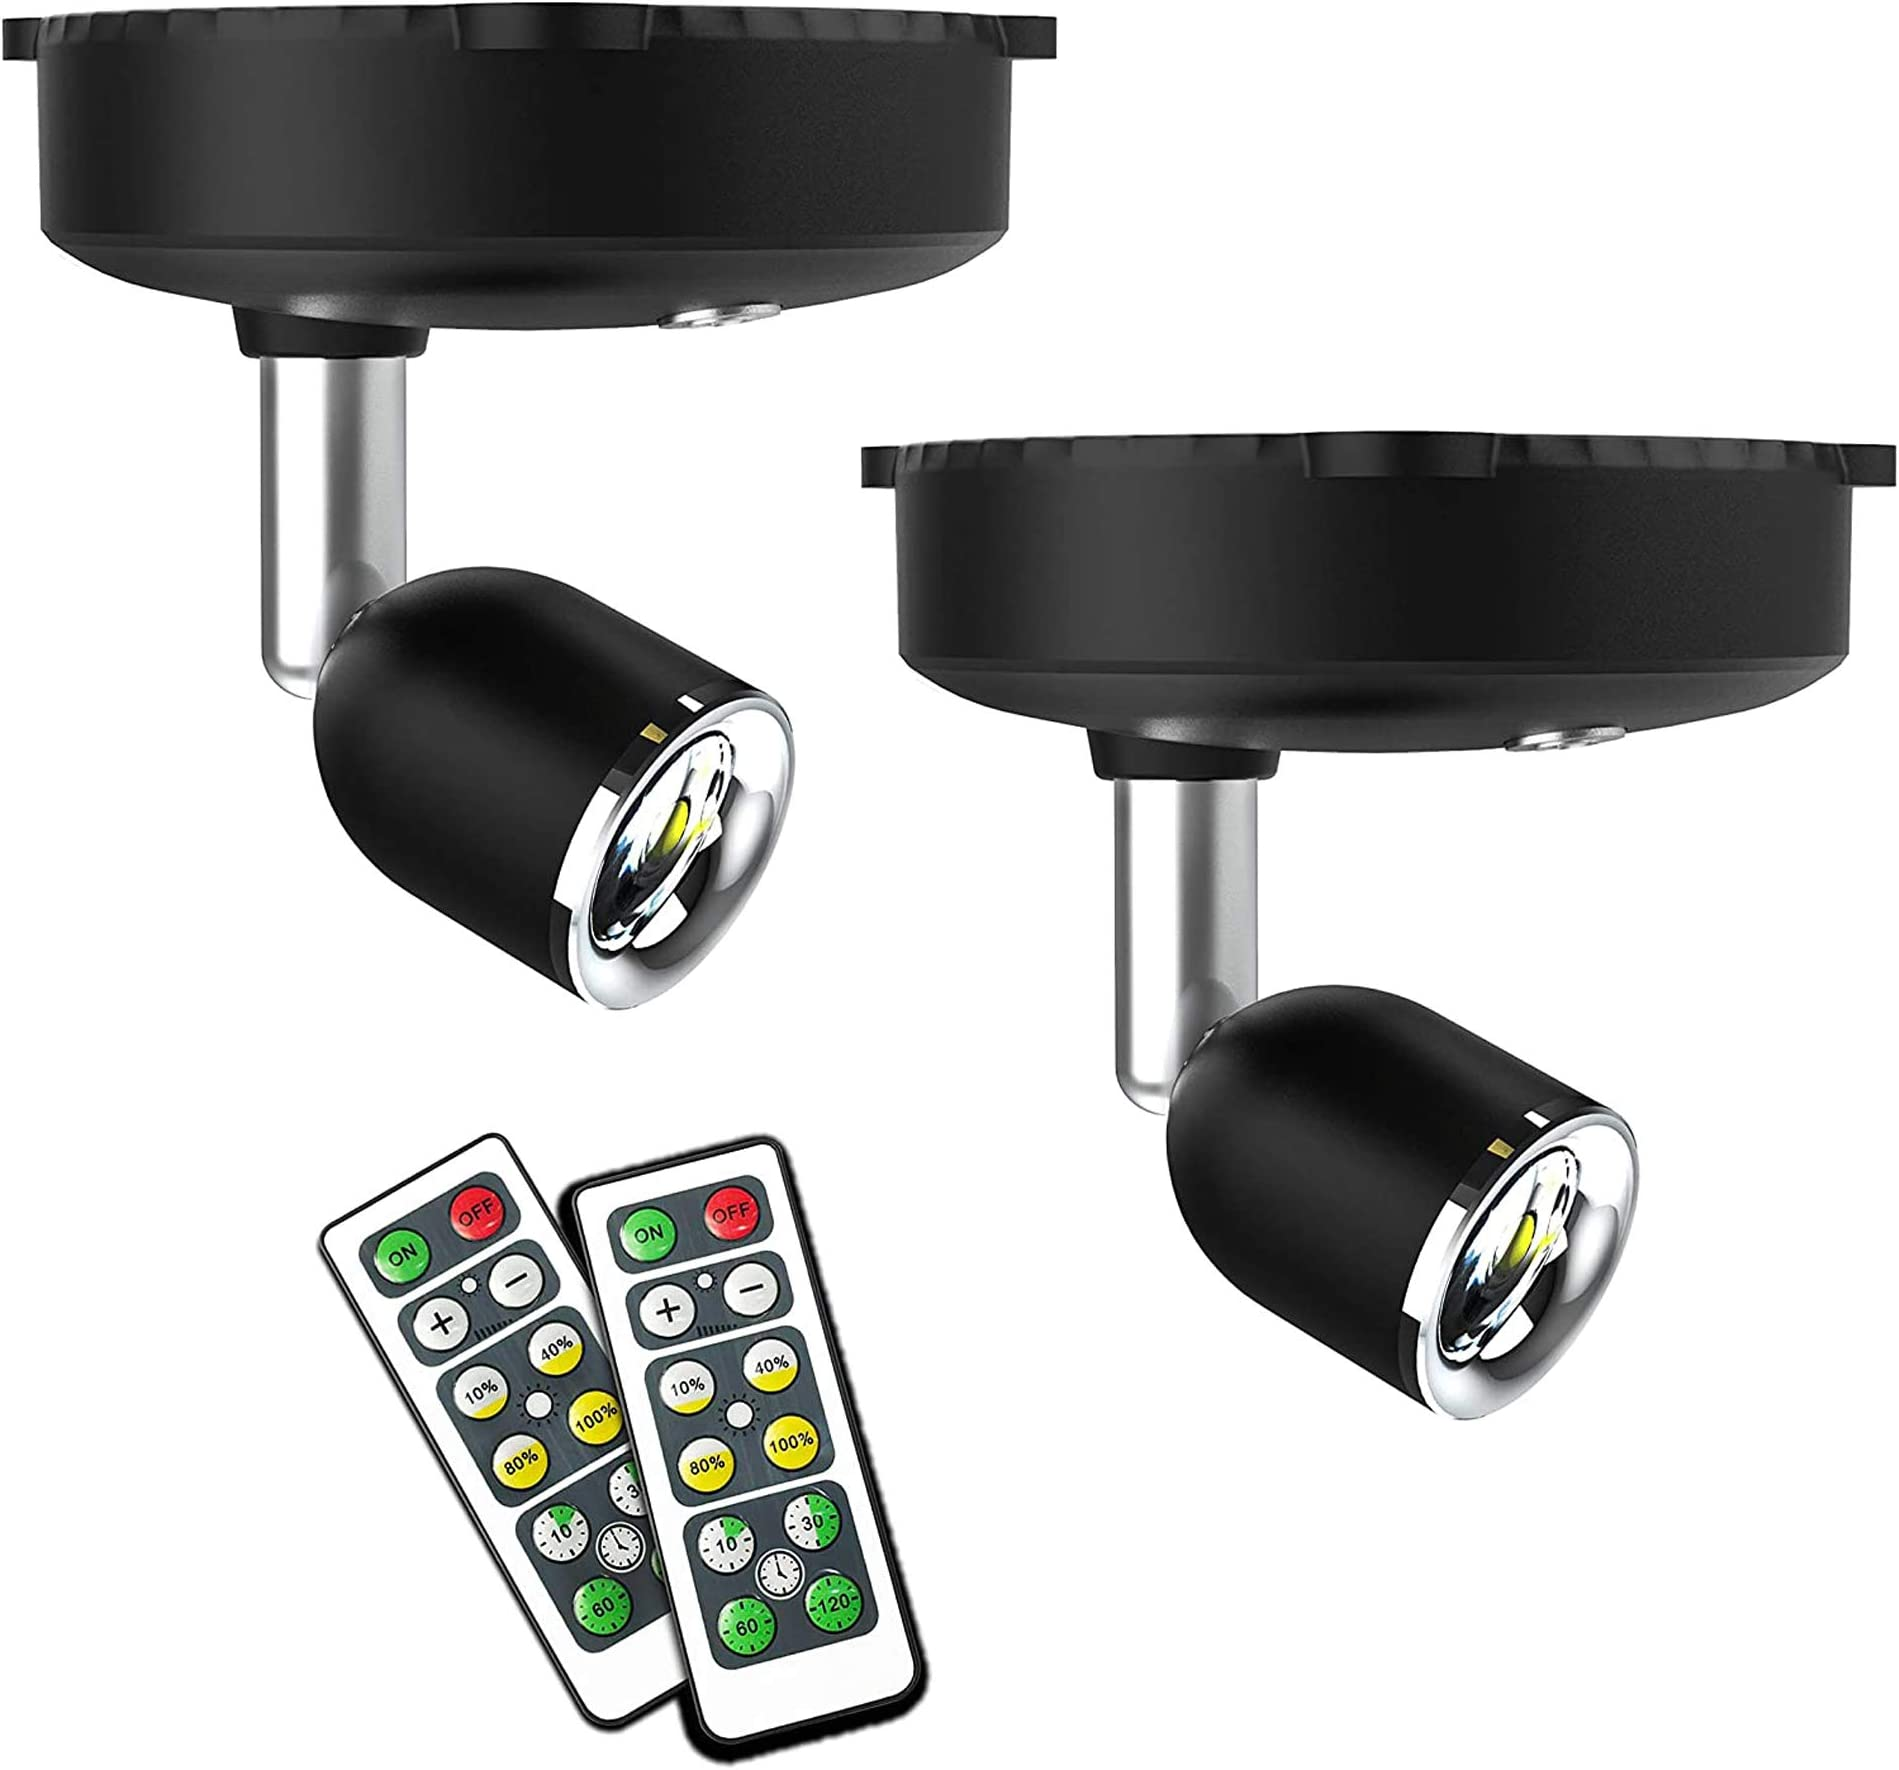 Justech 2PCs RGB LED Spotlights Wireless Ceiling Lights Battery Operated Ceiling Spotlight Adjustable Spotlight Head withRemote Control for Pictures Painting Closet